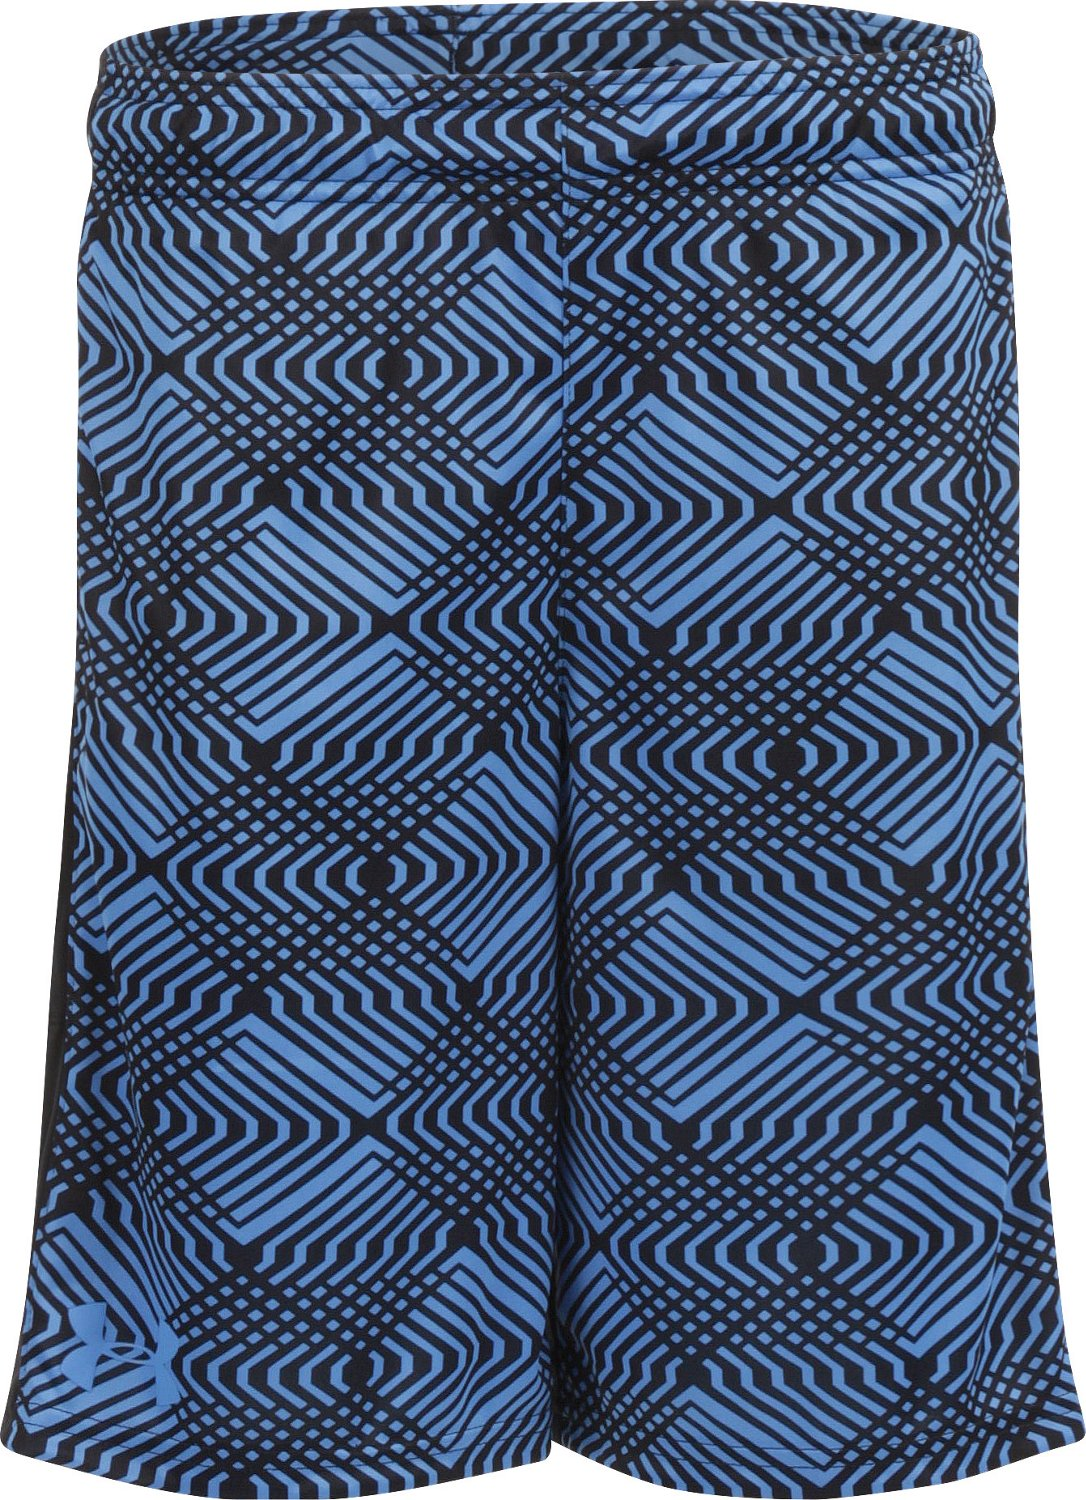 Under Armour Boys' Stunt Printed Short - view number 3